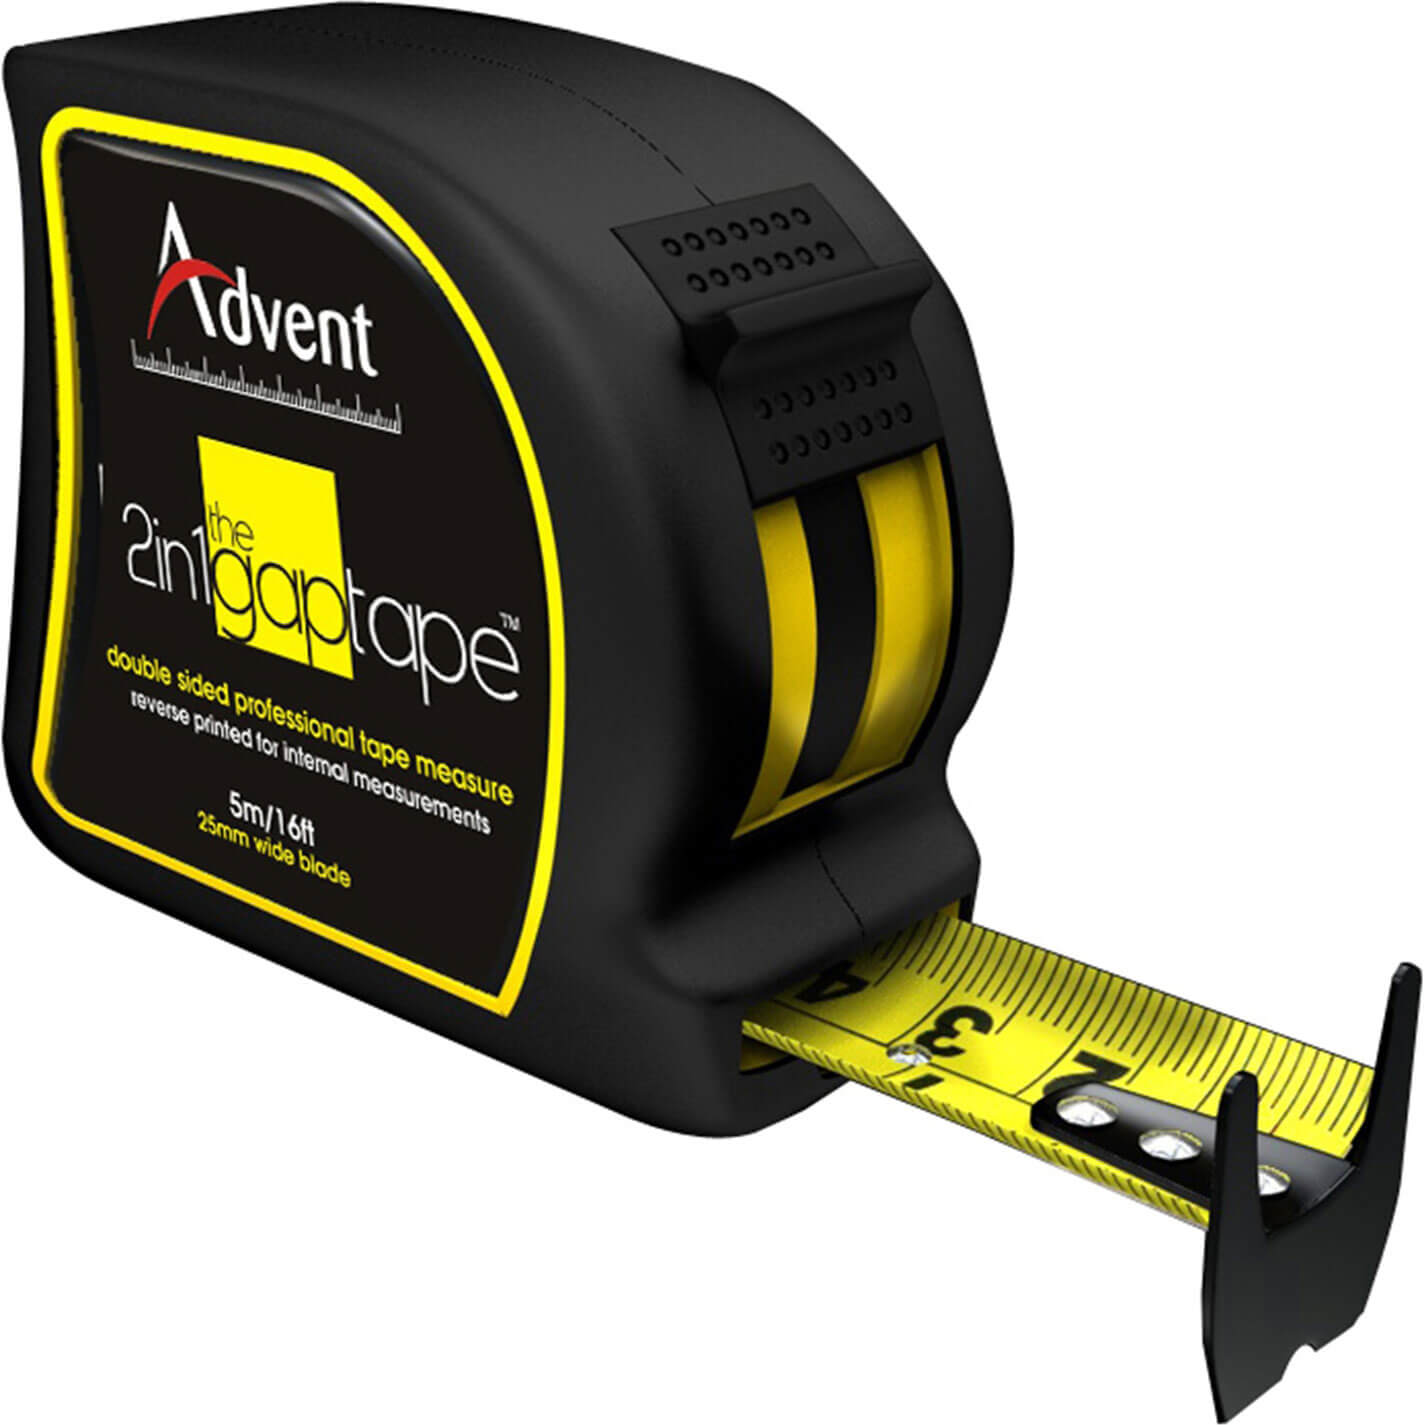 Image of Advent 2-In-1 Double Sided Gap Tape Measure Imperial & Metric 16ft / 5m 25mm